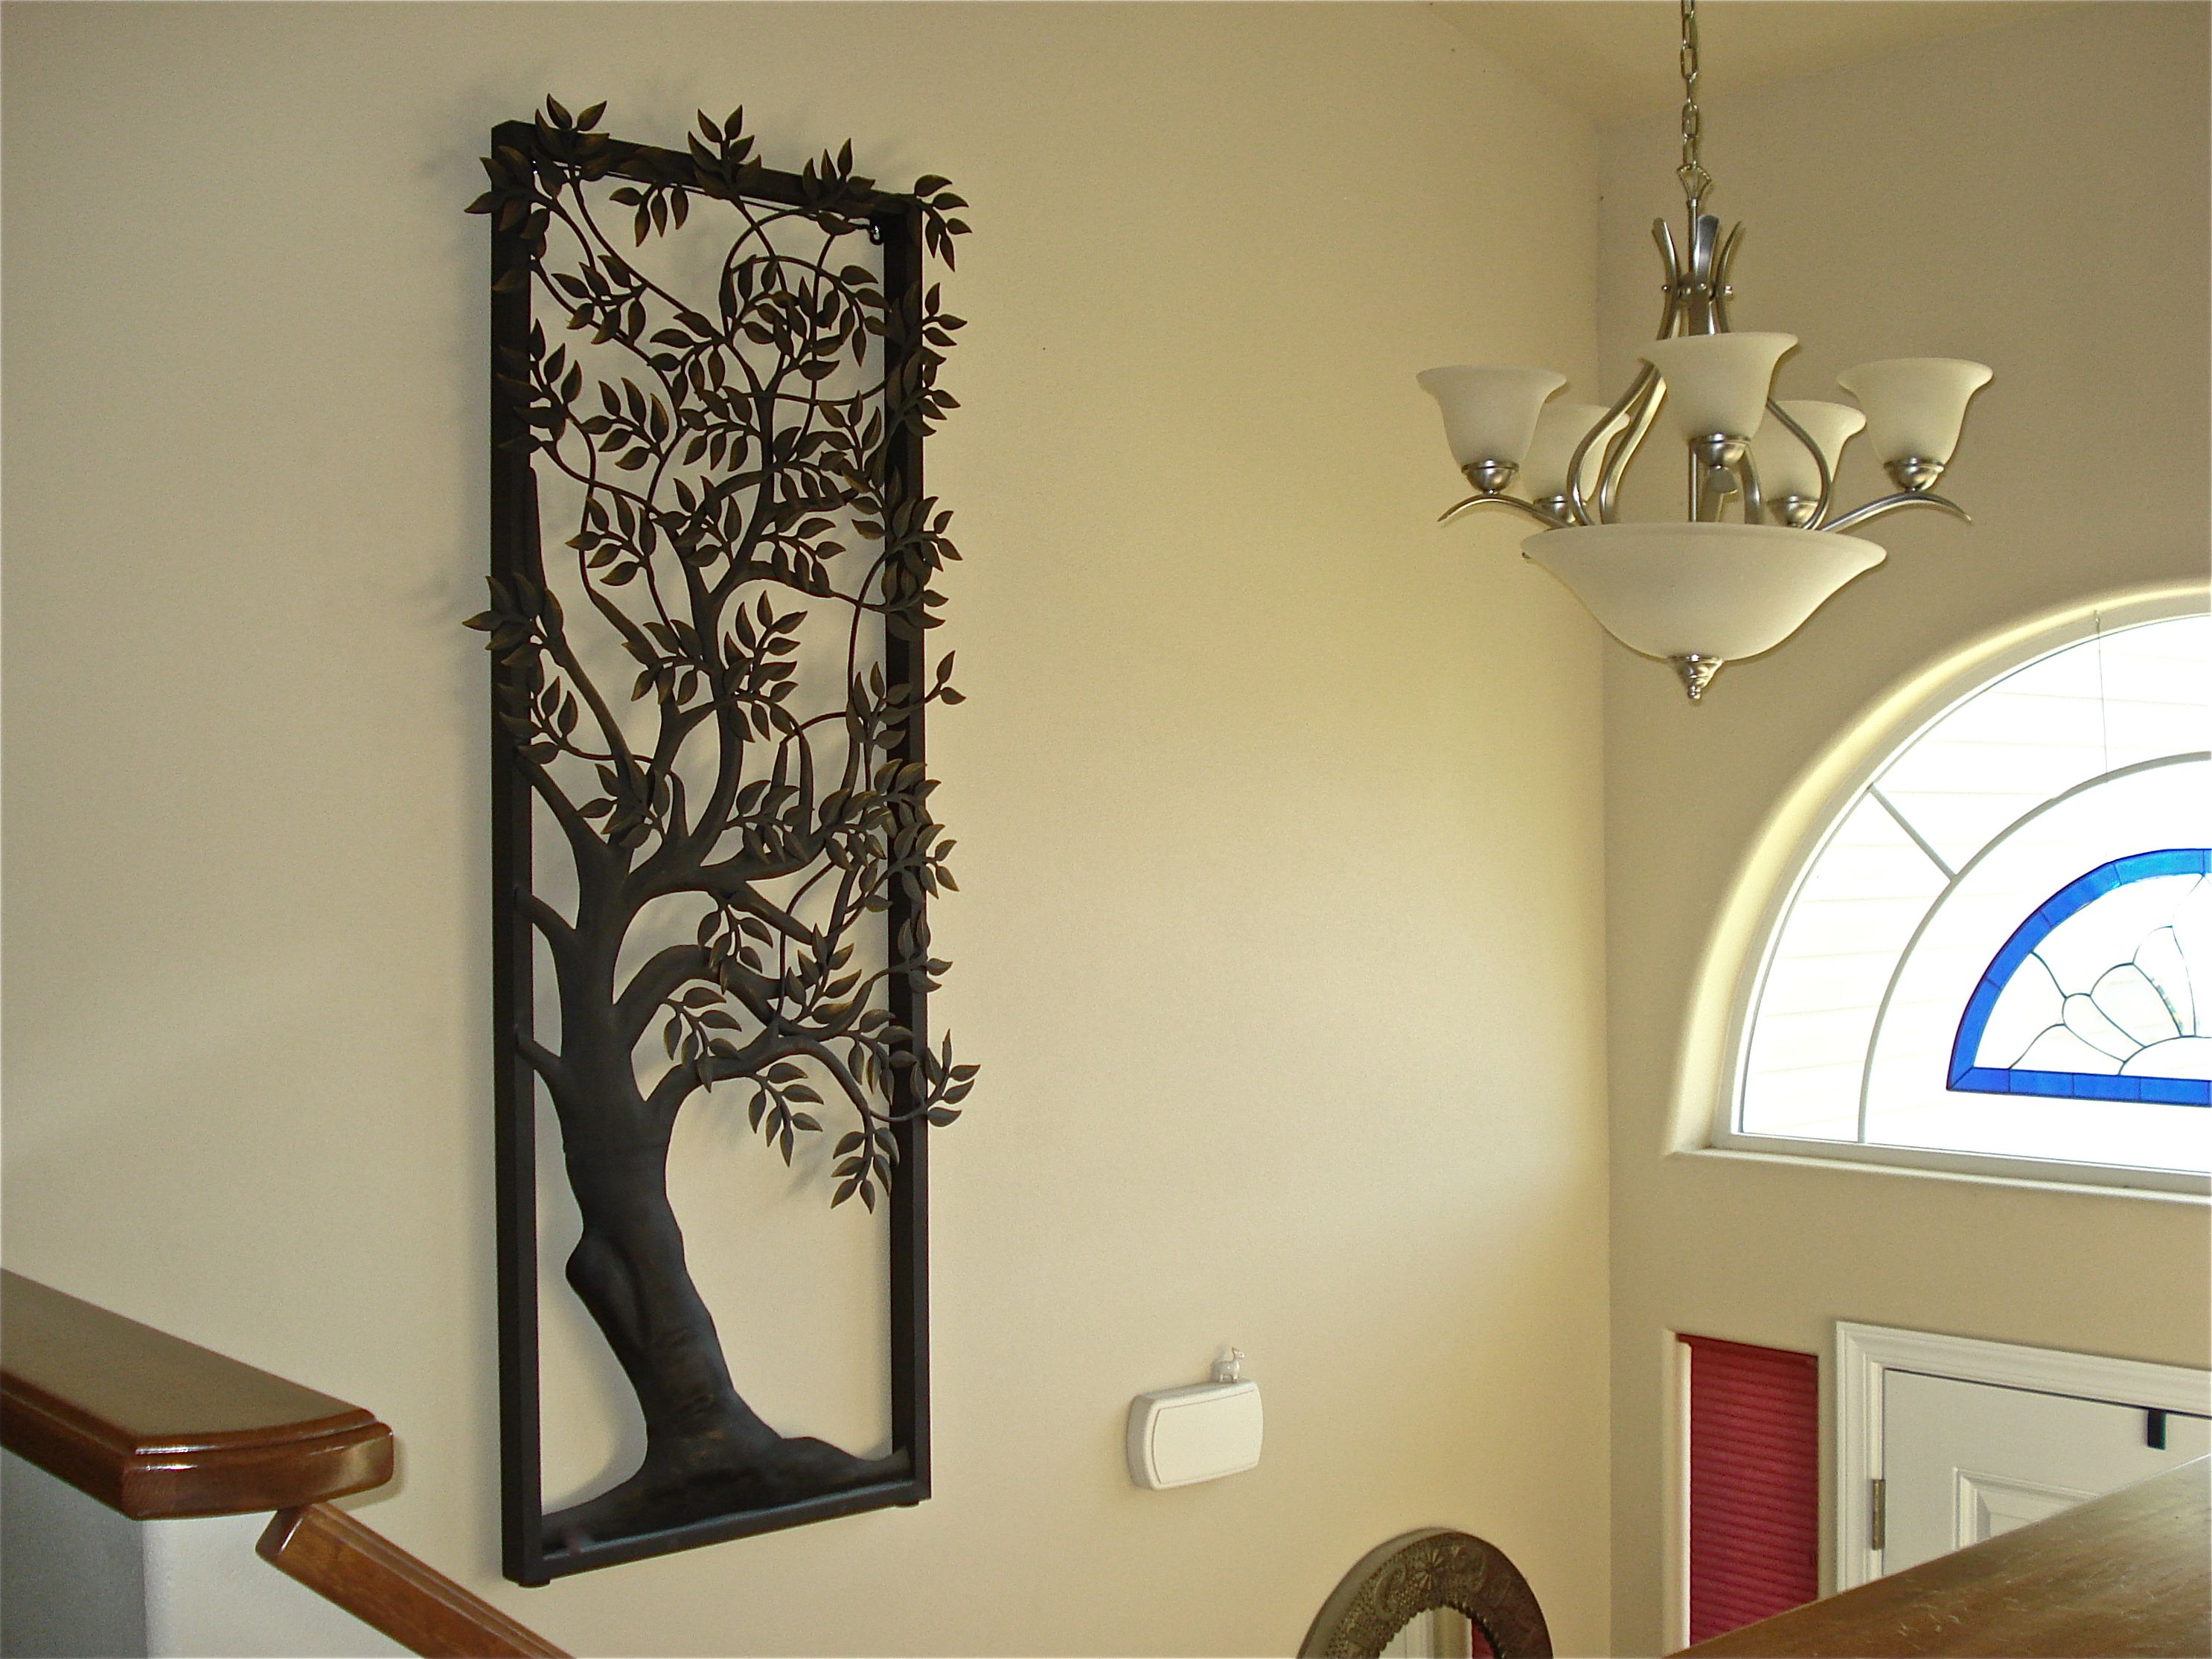 Pier 1 large metal tree art over entry staircase | Pier 1 goodies in ...